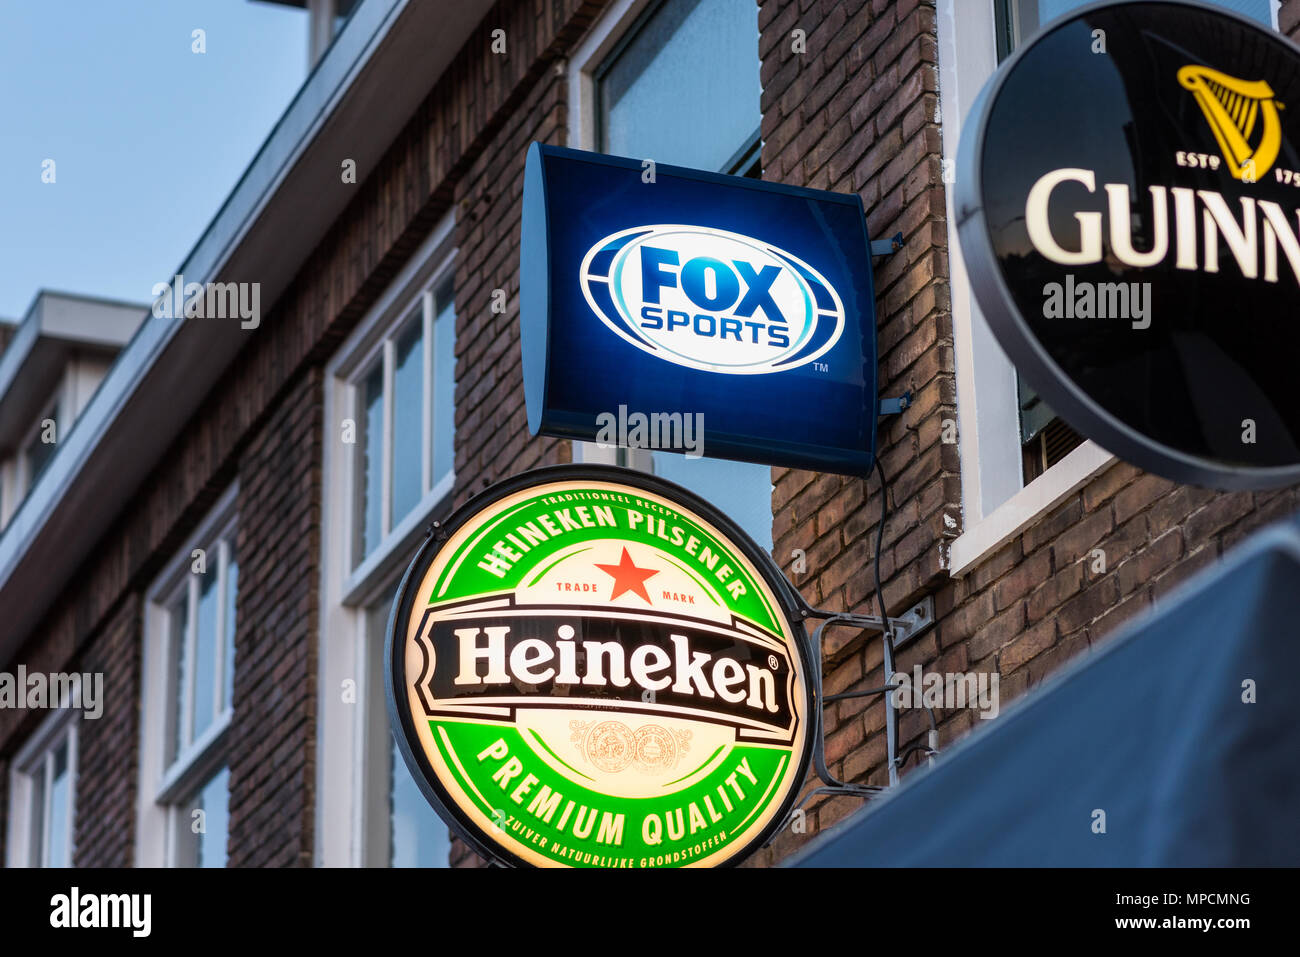 Fox Sports, Heineken and Guinness logos outside a bar in Alkmaar, Netherlands. Fox Sports live broadcasts professional soccer in The Netherlands. - Stock Image